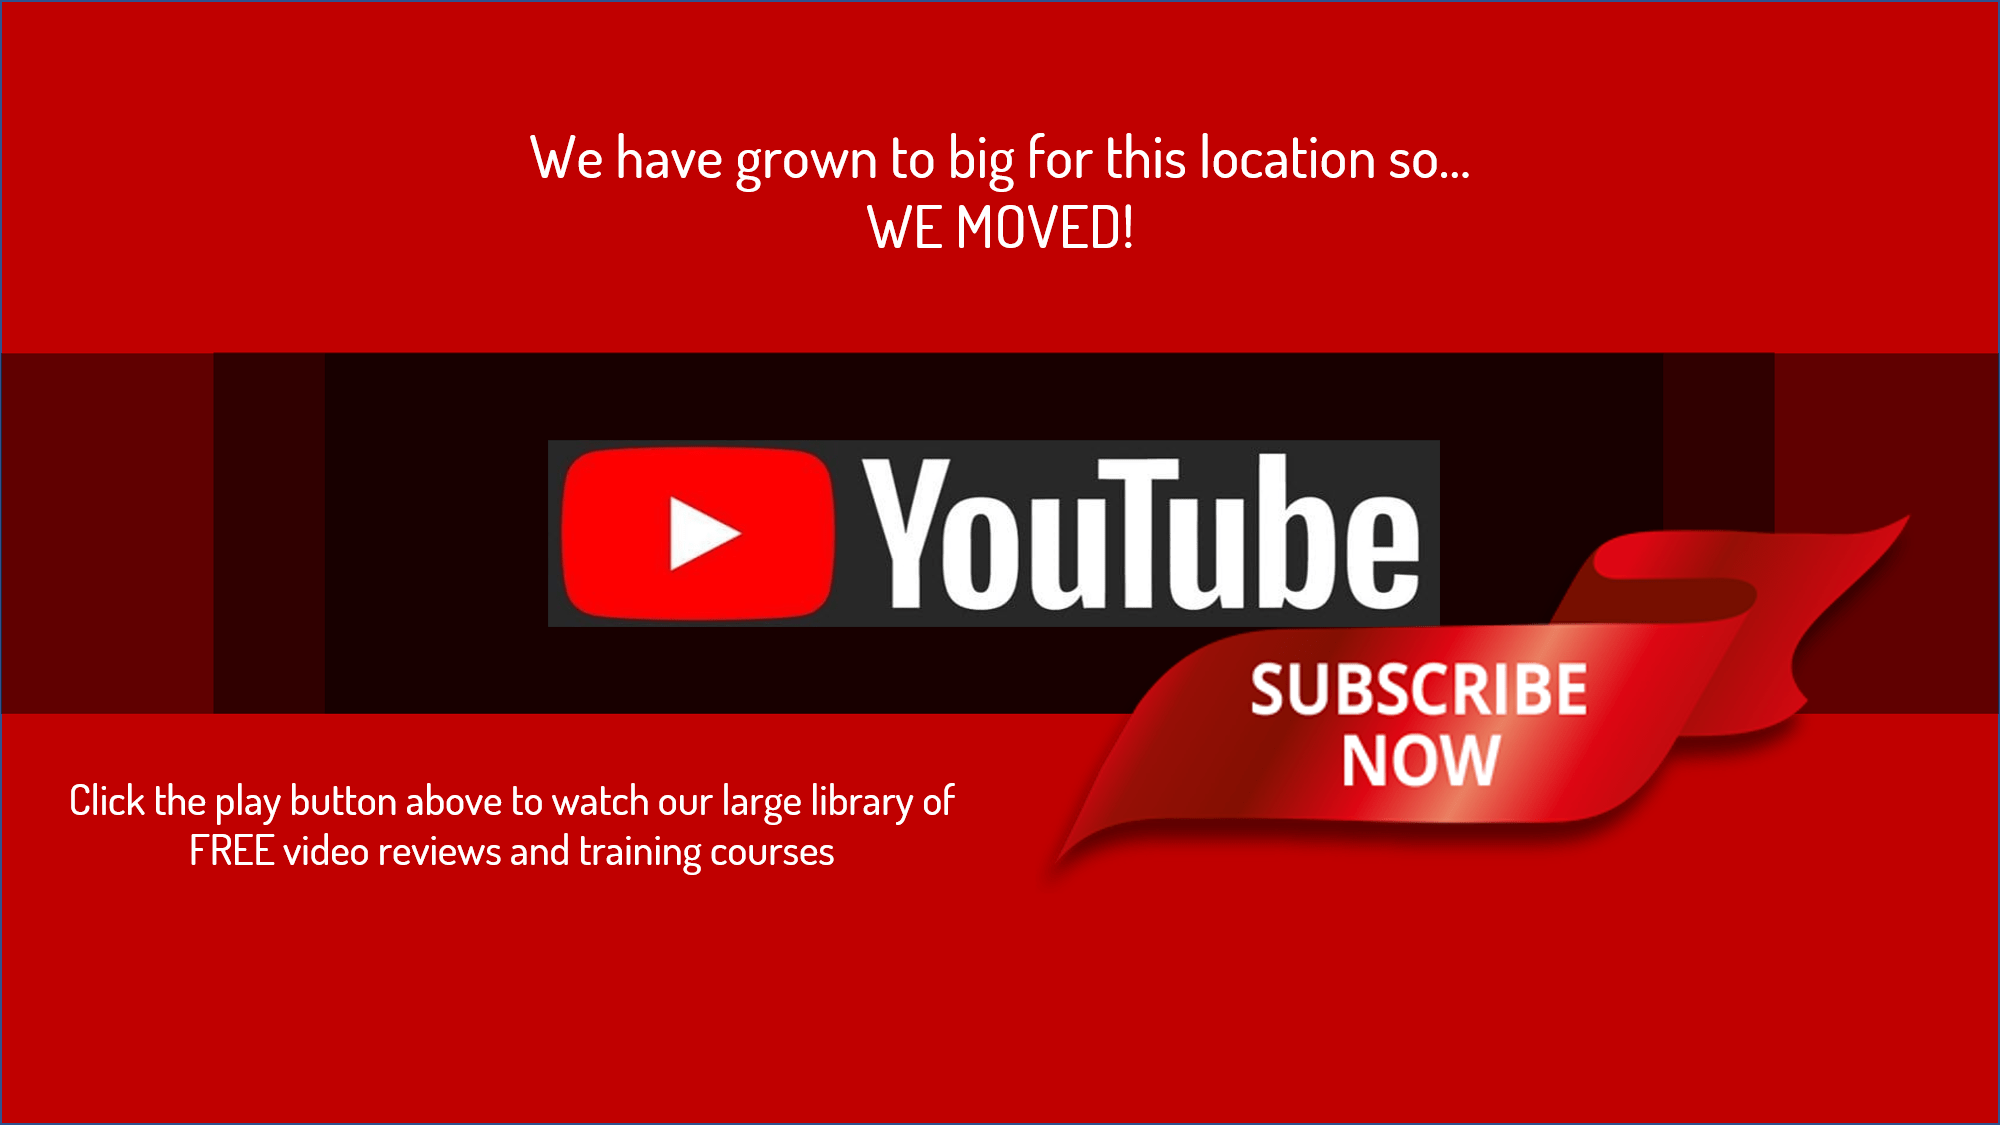 See more ideas about youtube banners, youtube banner backgrounds, twitter header aesthetic. Video Vlog Video Kaboose